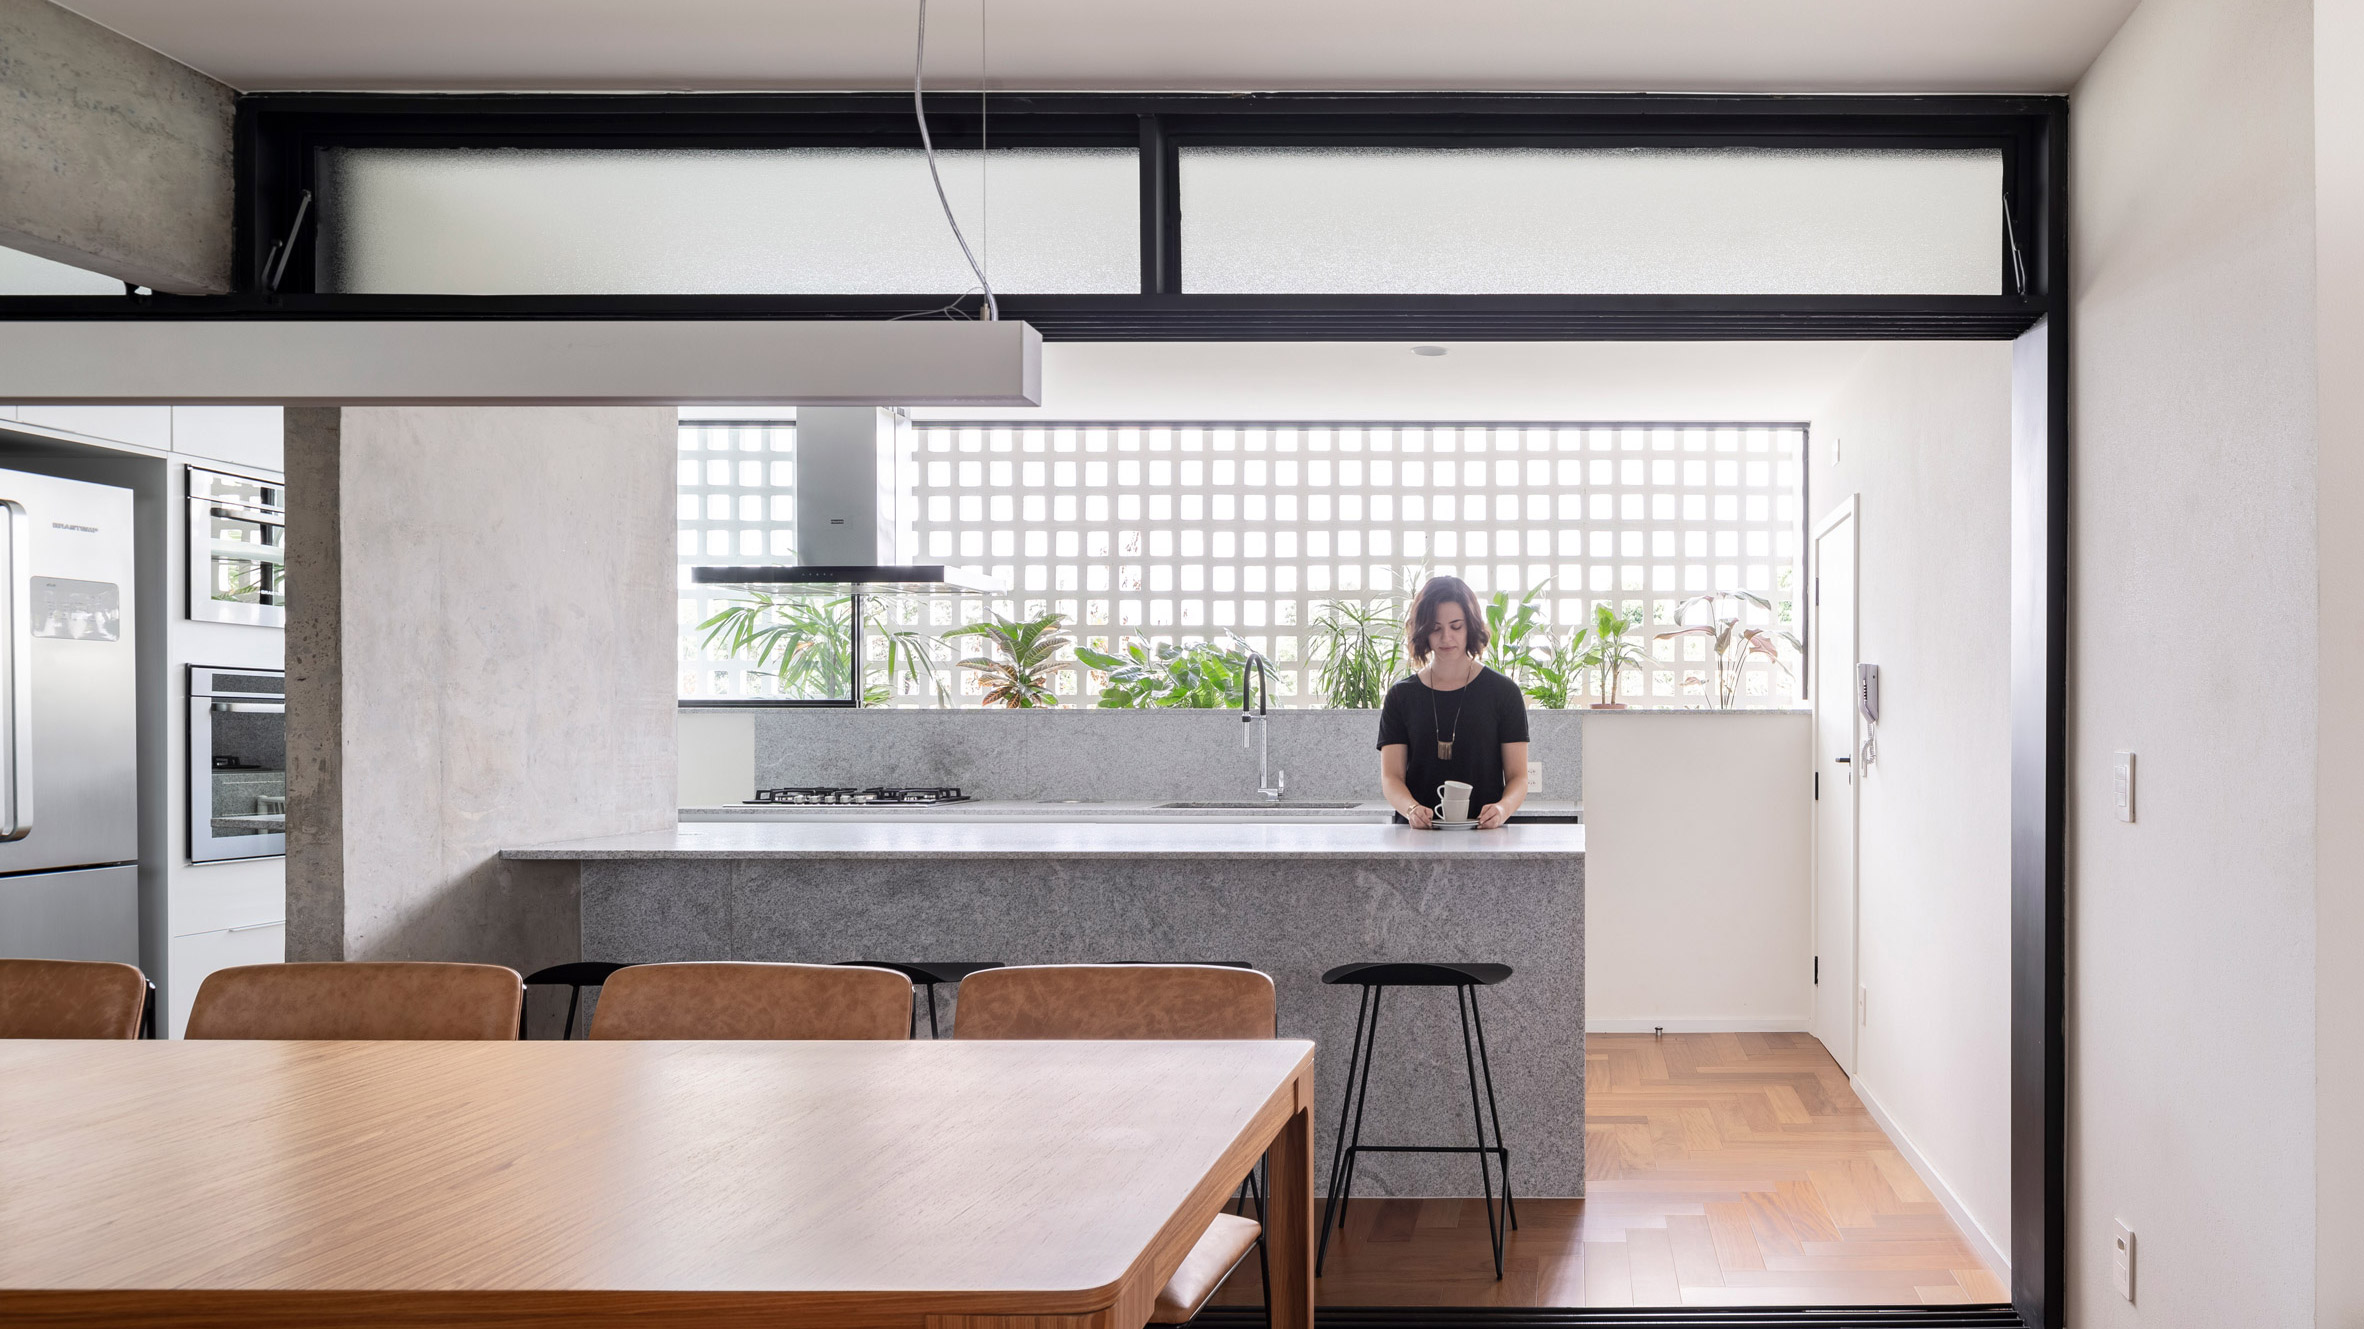 Apartment in Brasilia with lattice-like wall to let in light